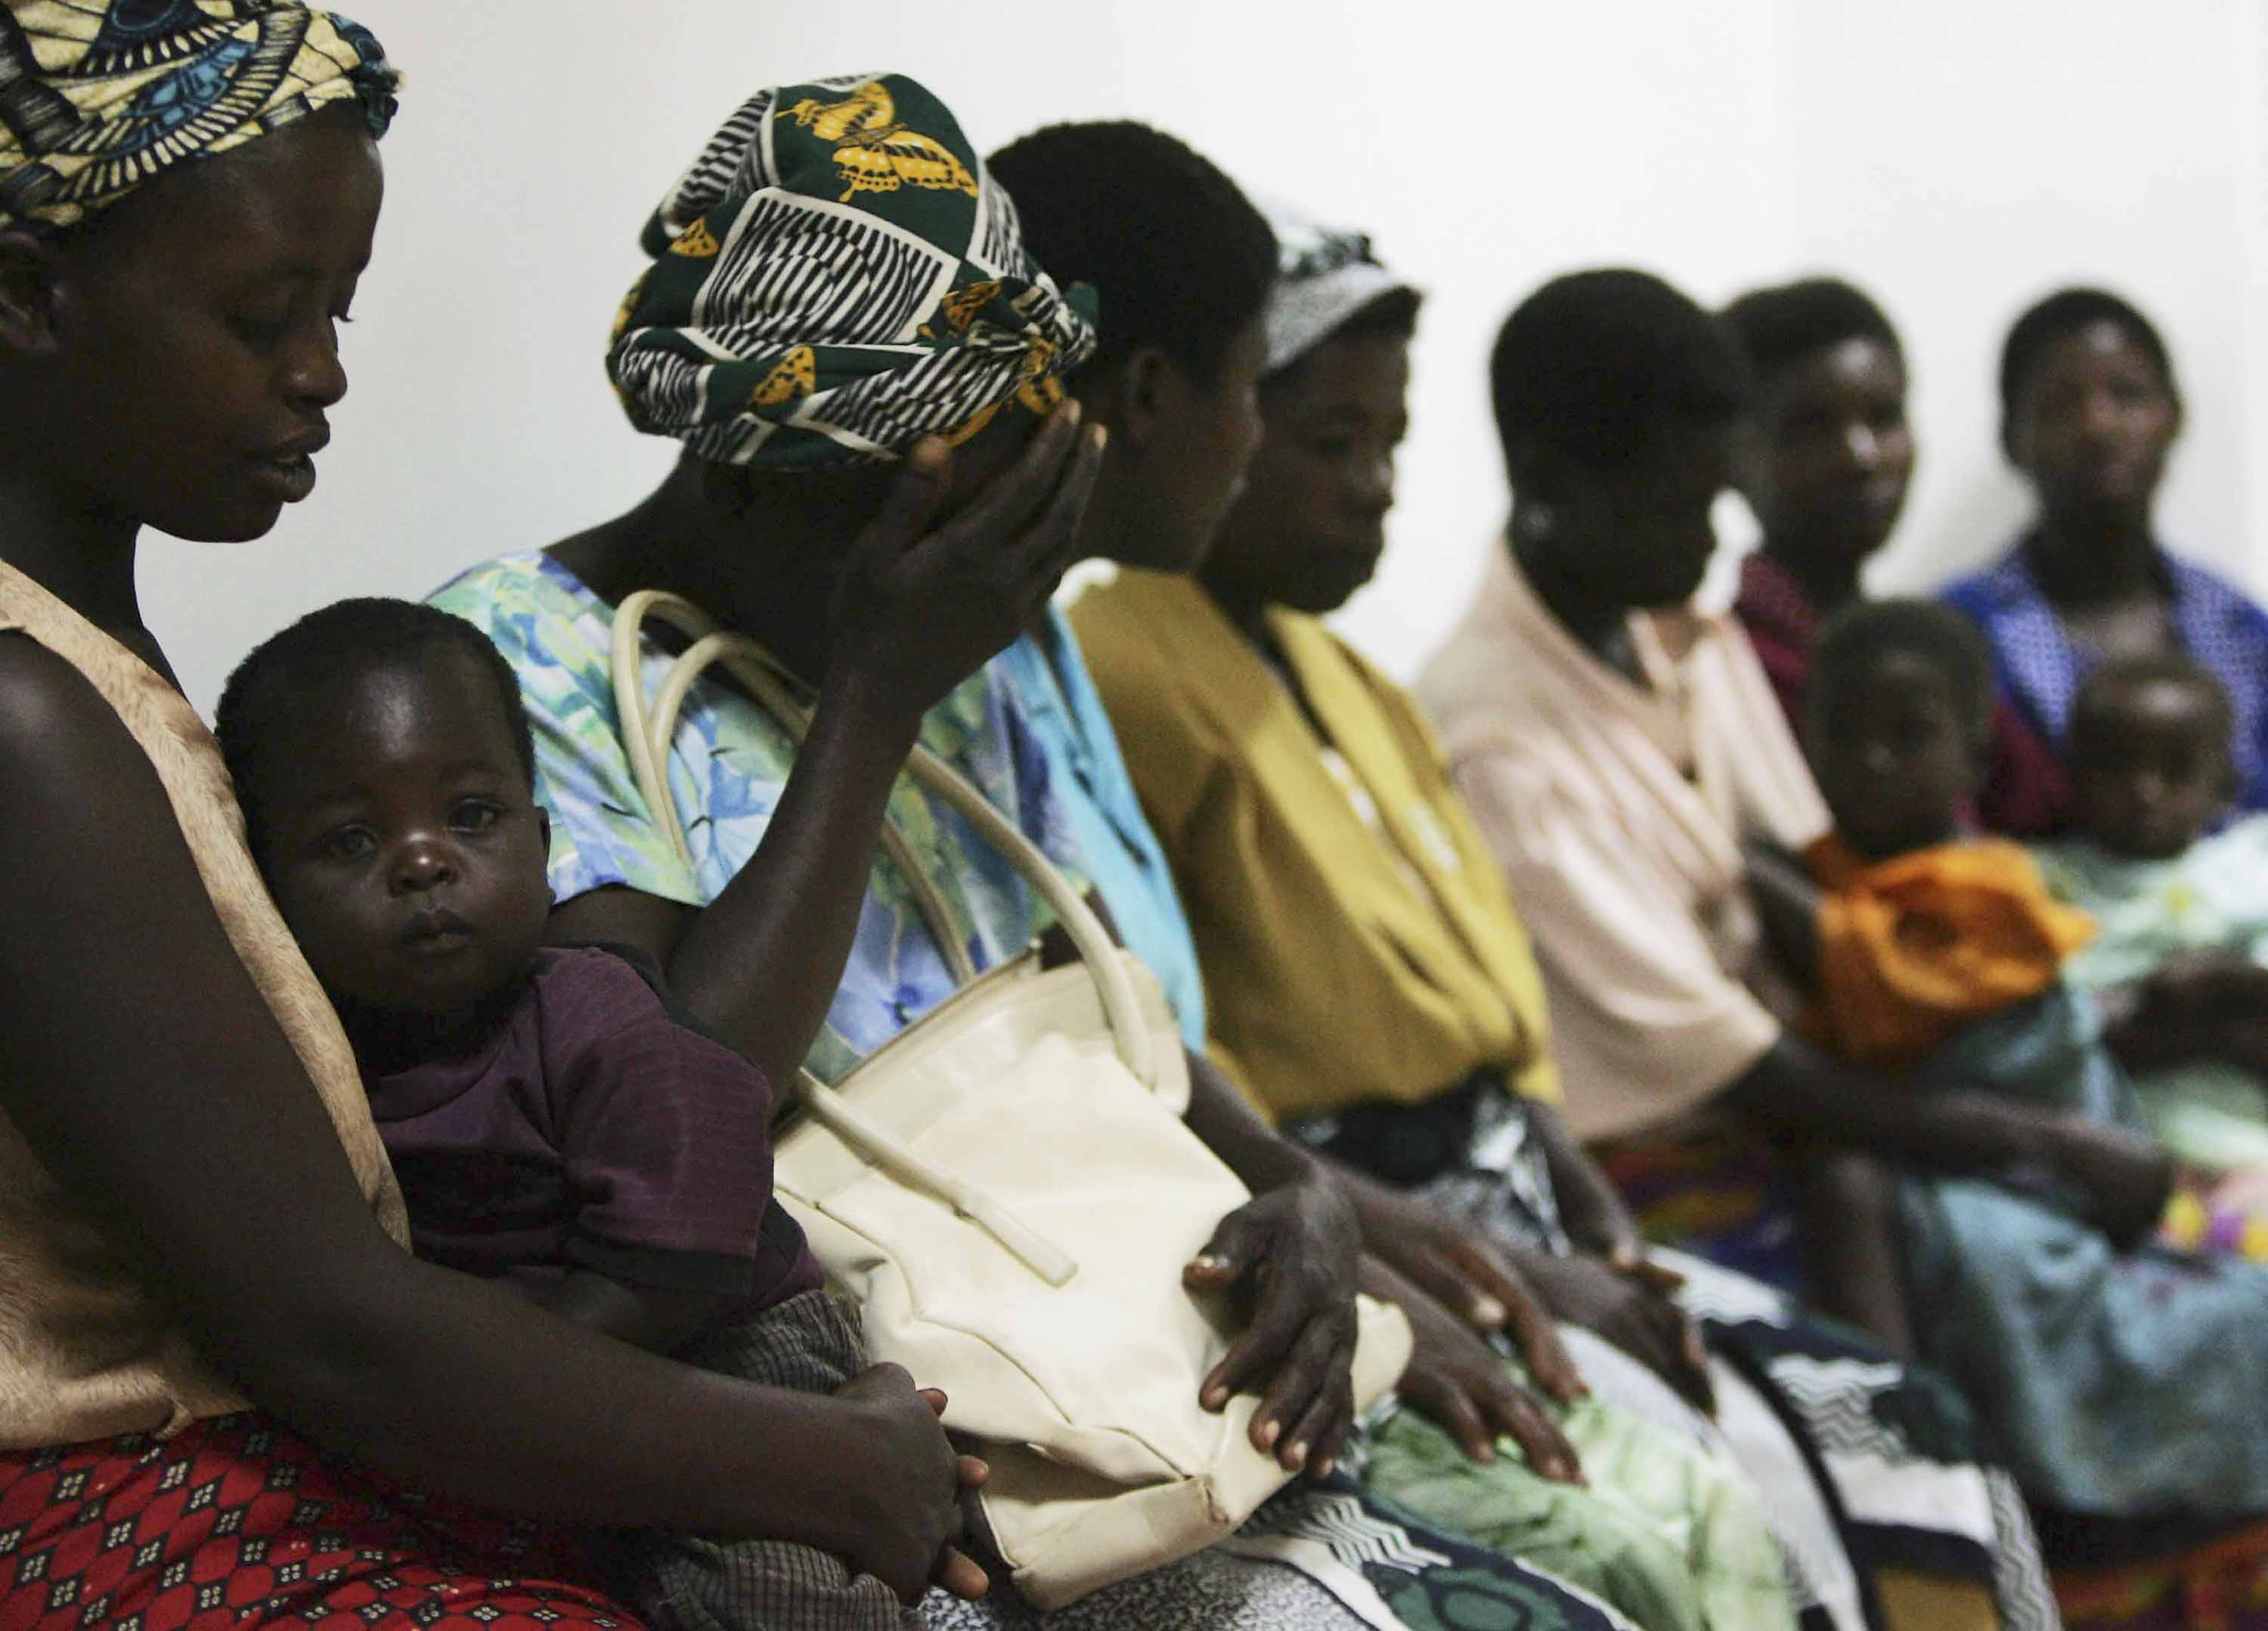 Malaria is among the world's biggest killers of children. Now there's a vaccine.